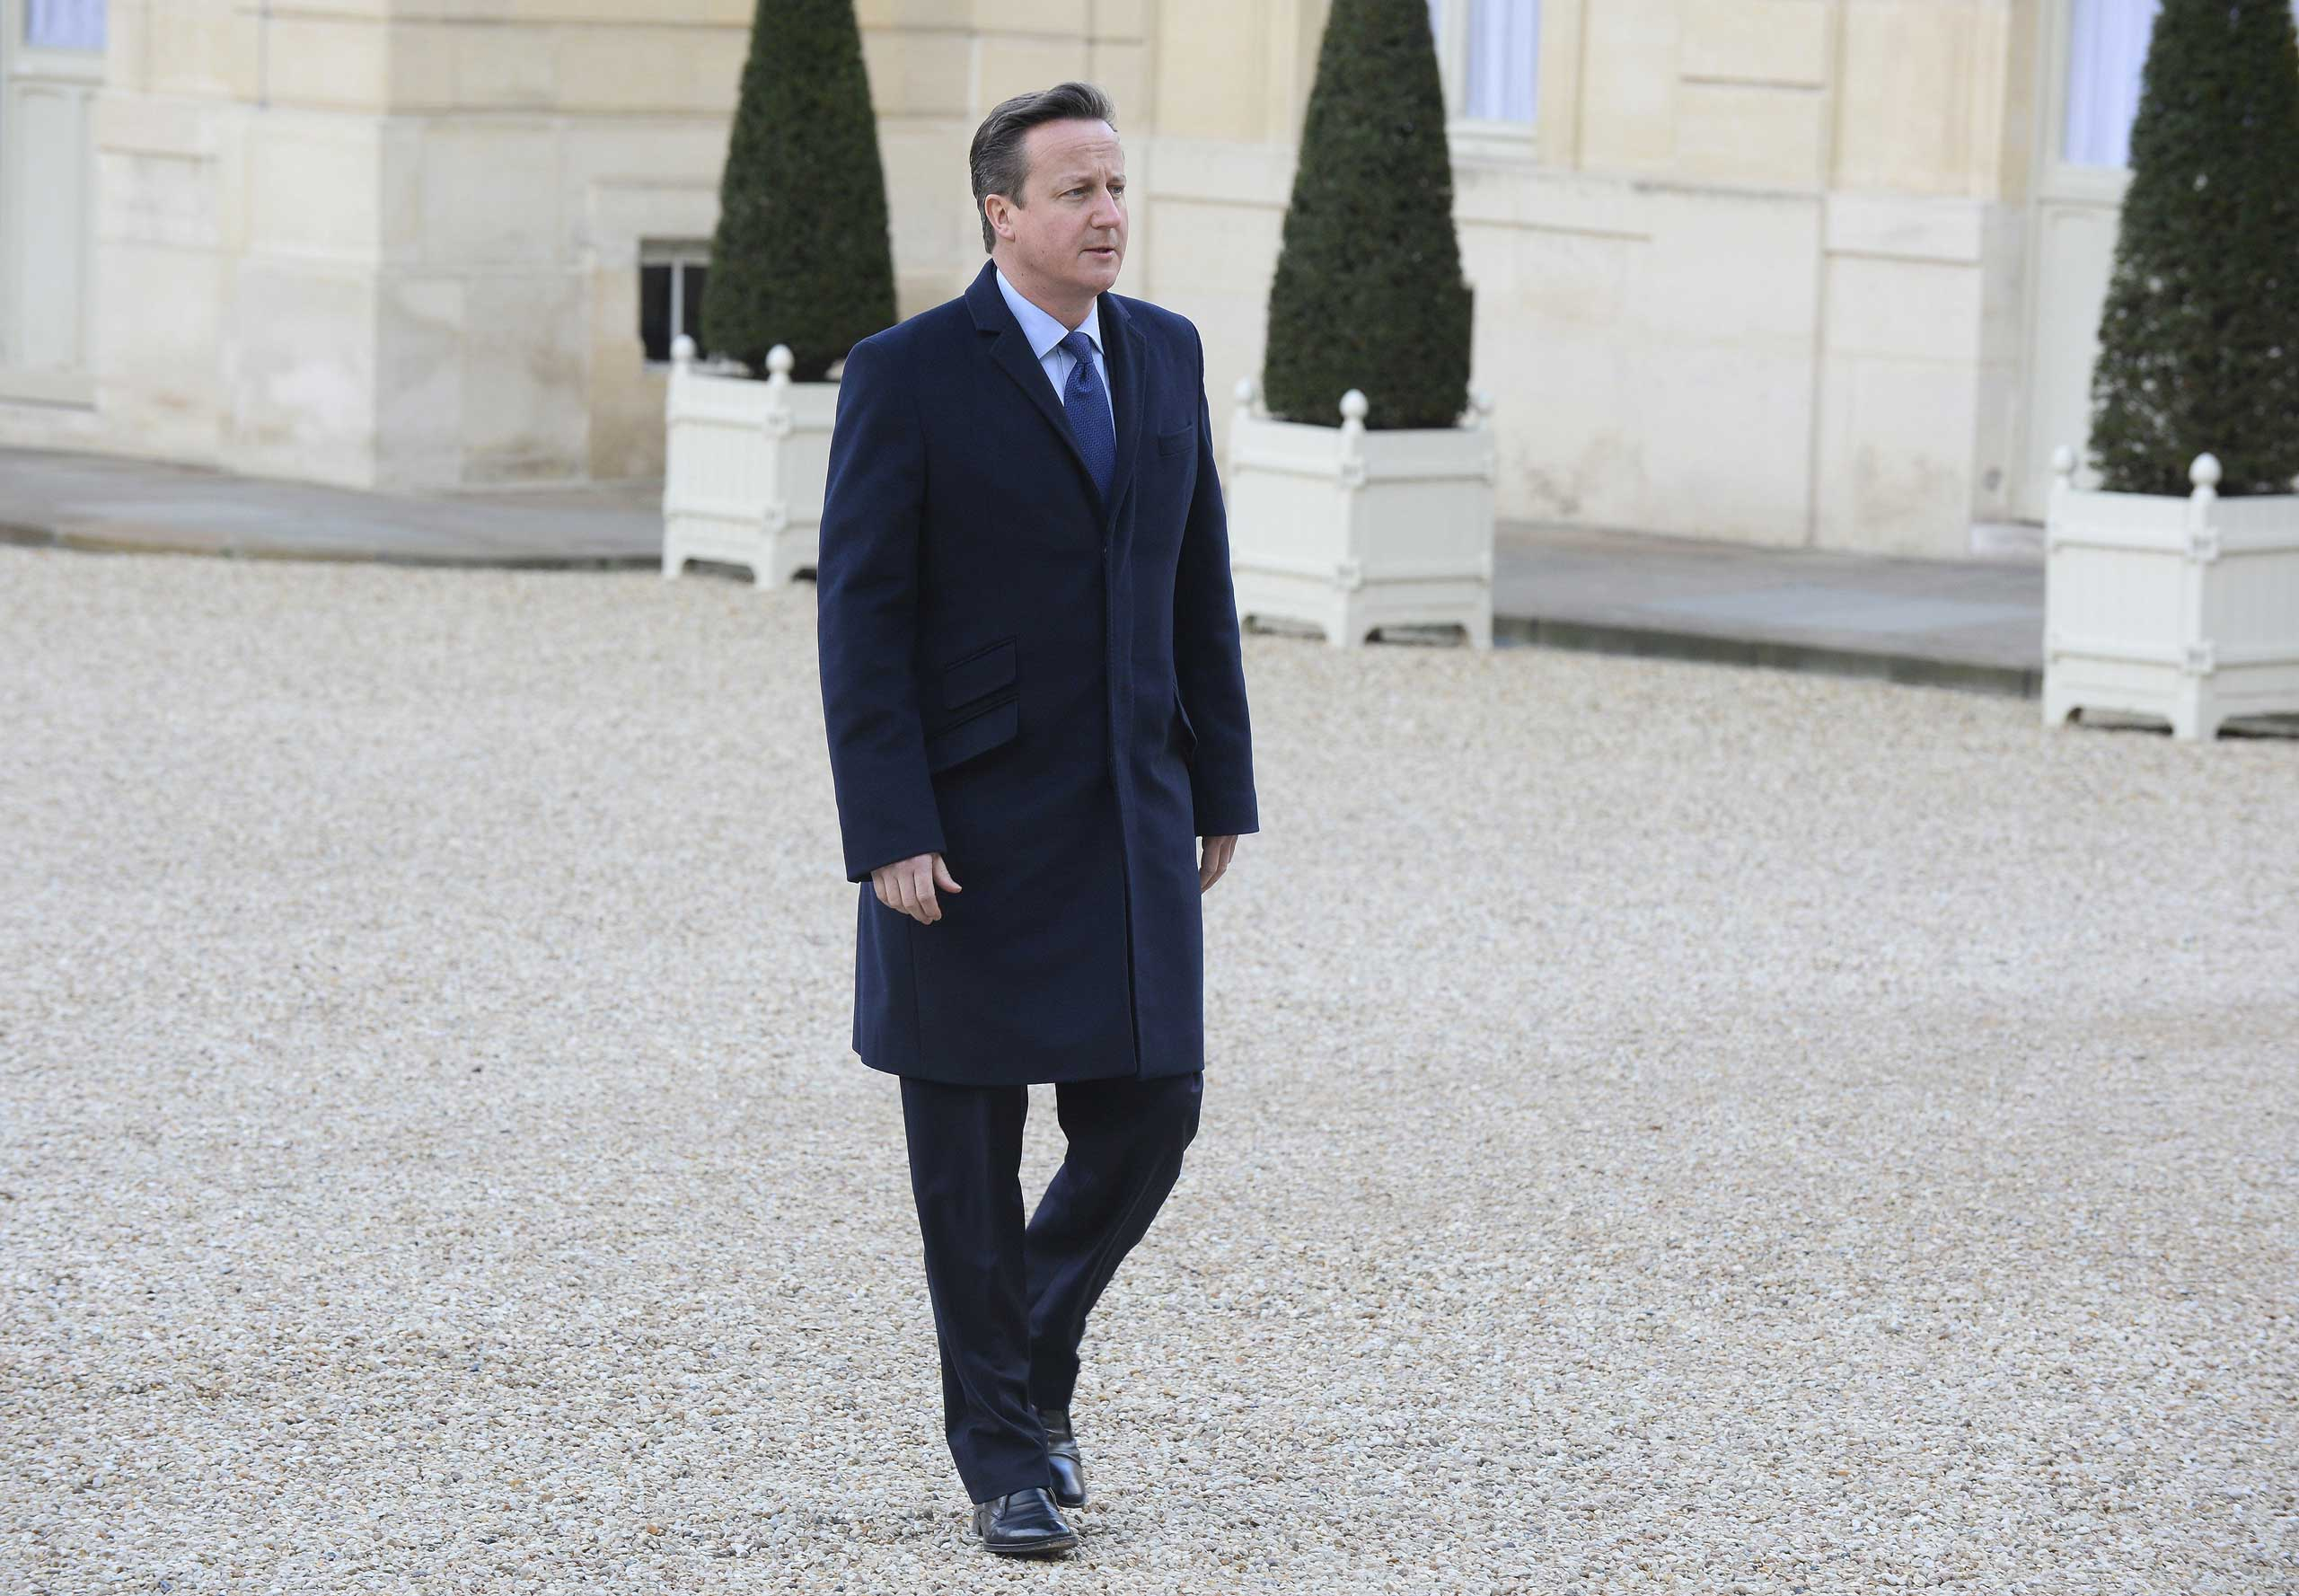 David Cameron in Paris on Jan. 11, 2015.